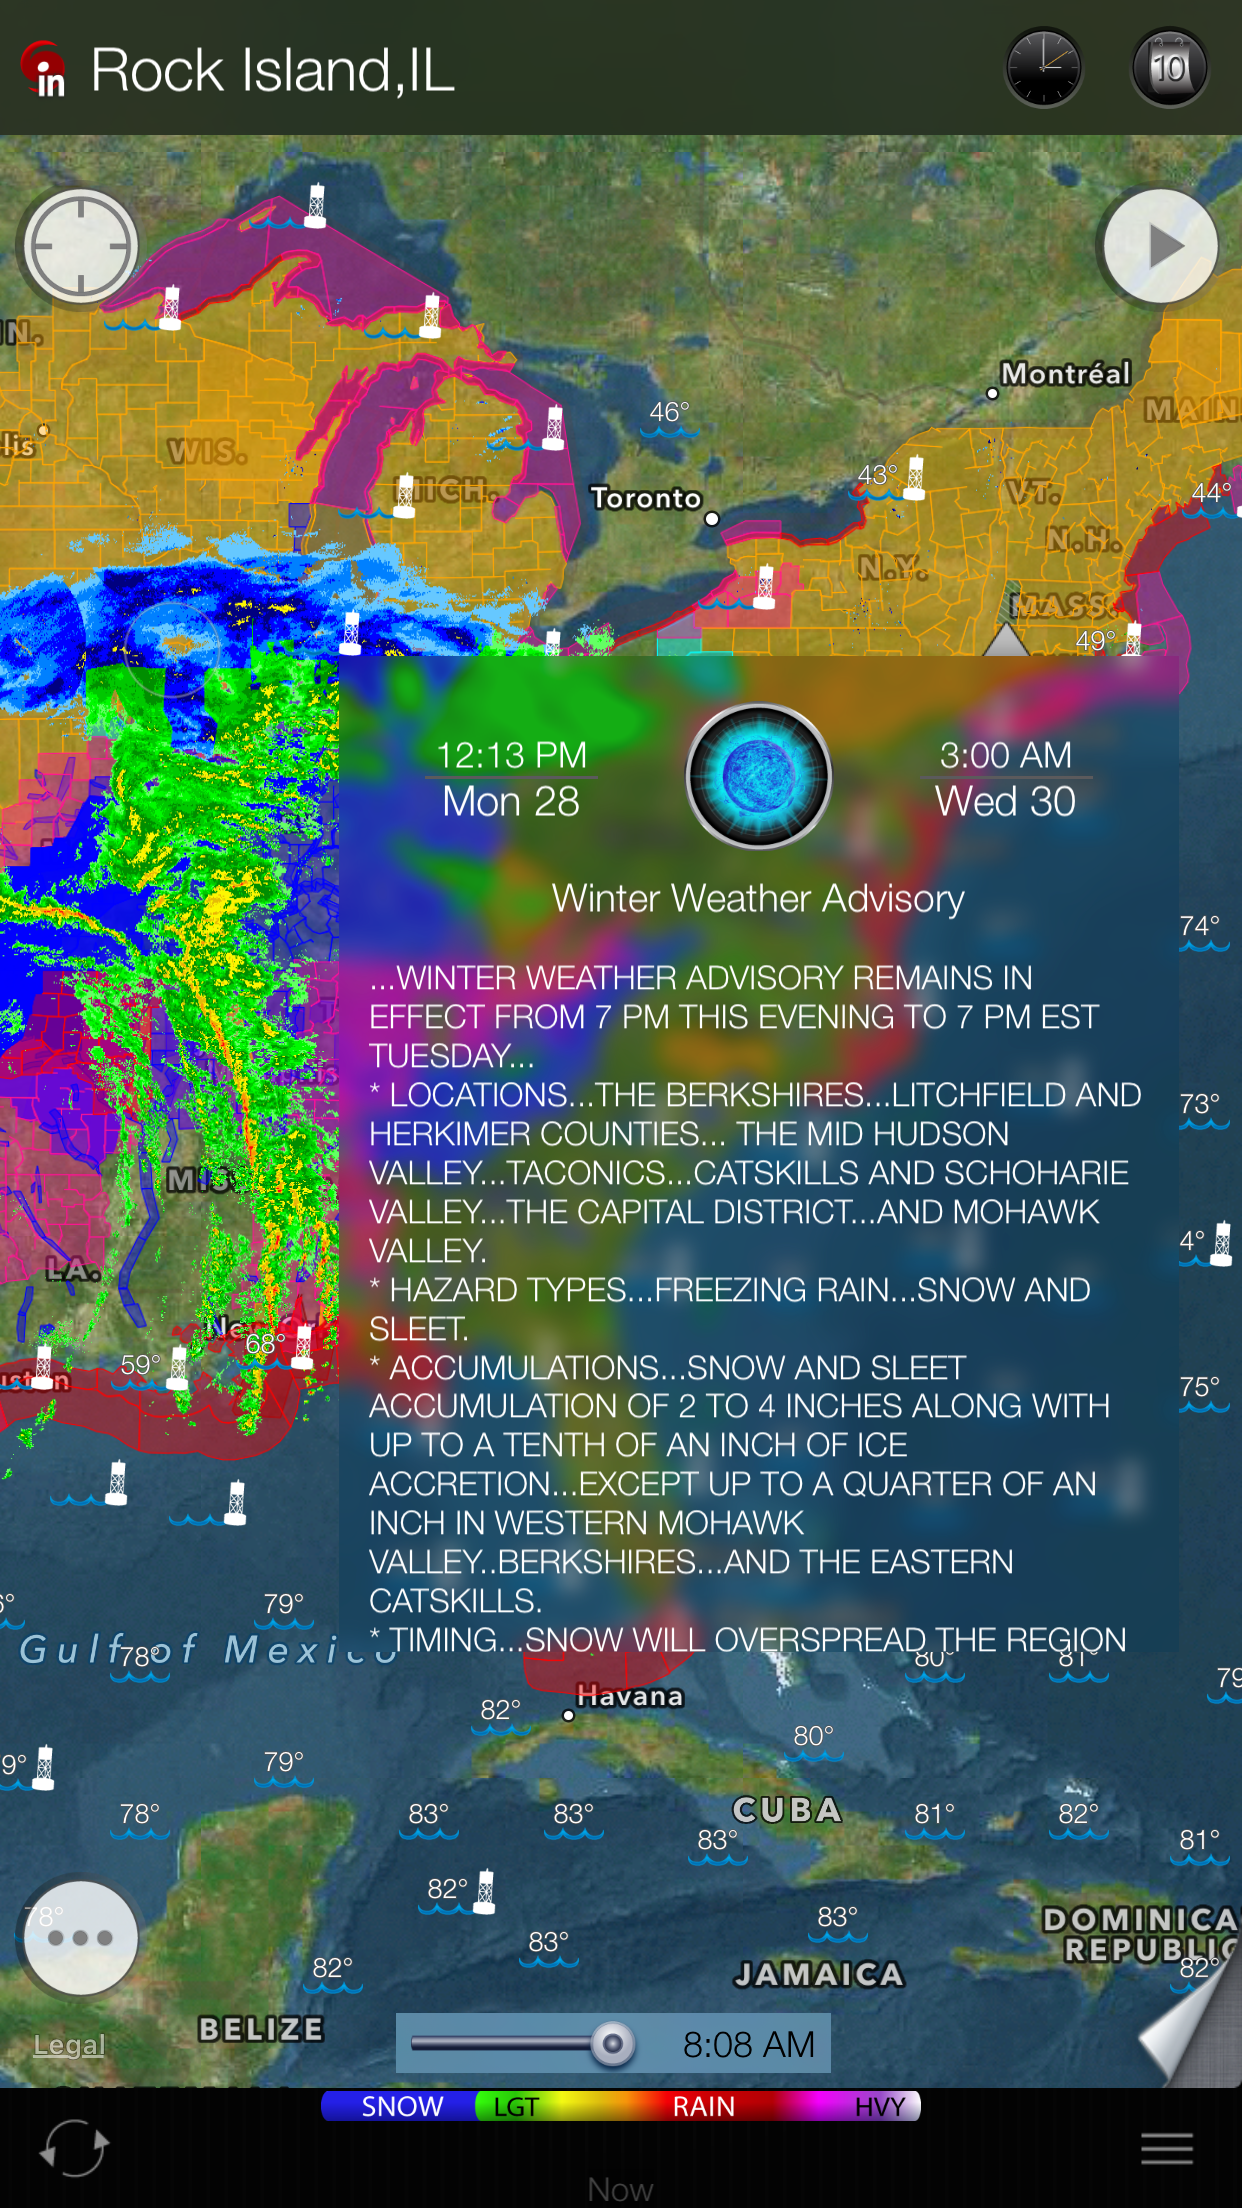 eWeather HD for iPhone and iPad -multilayered weather maps